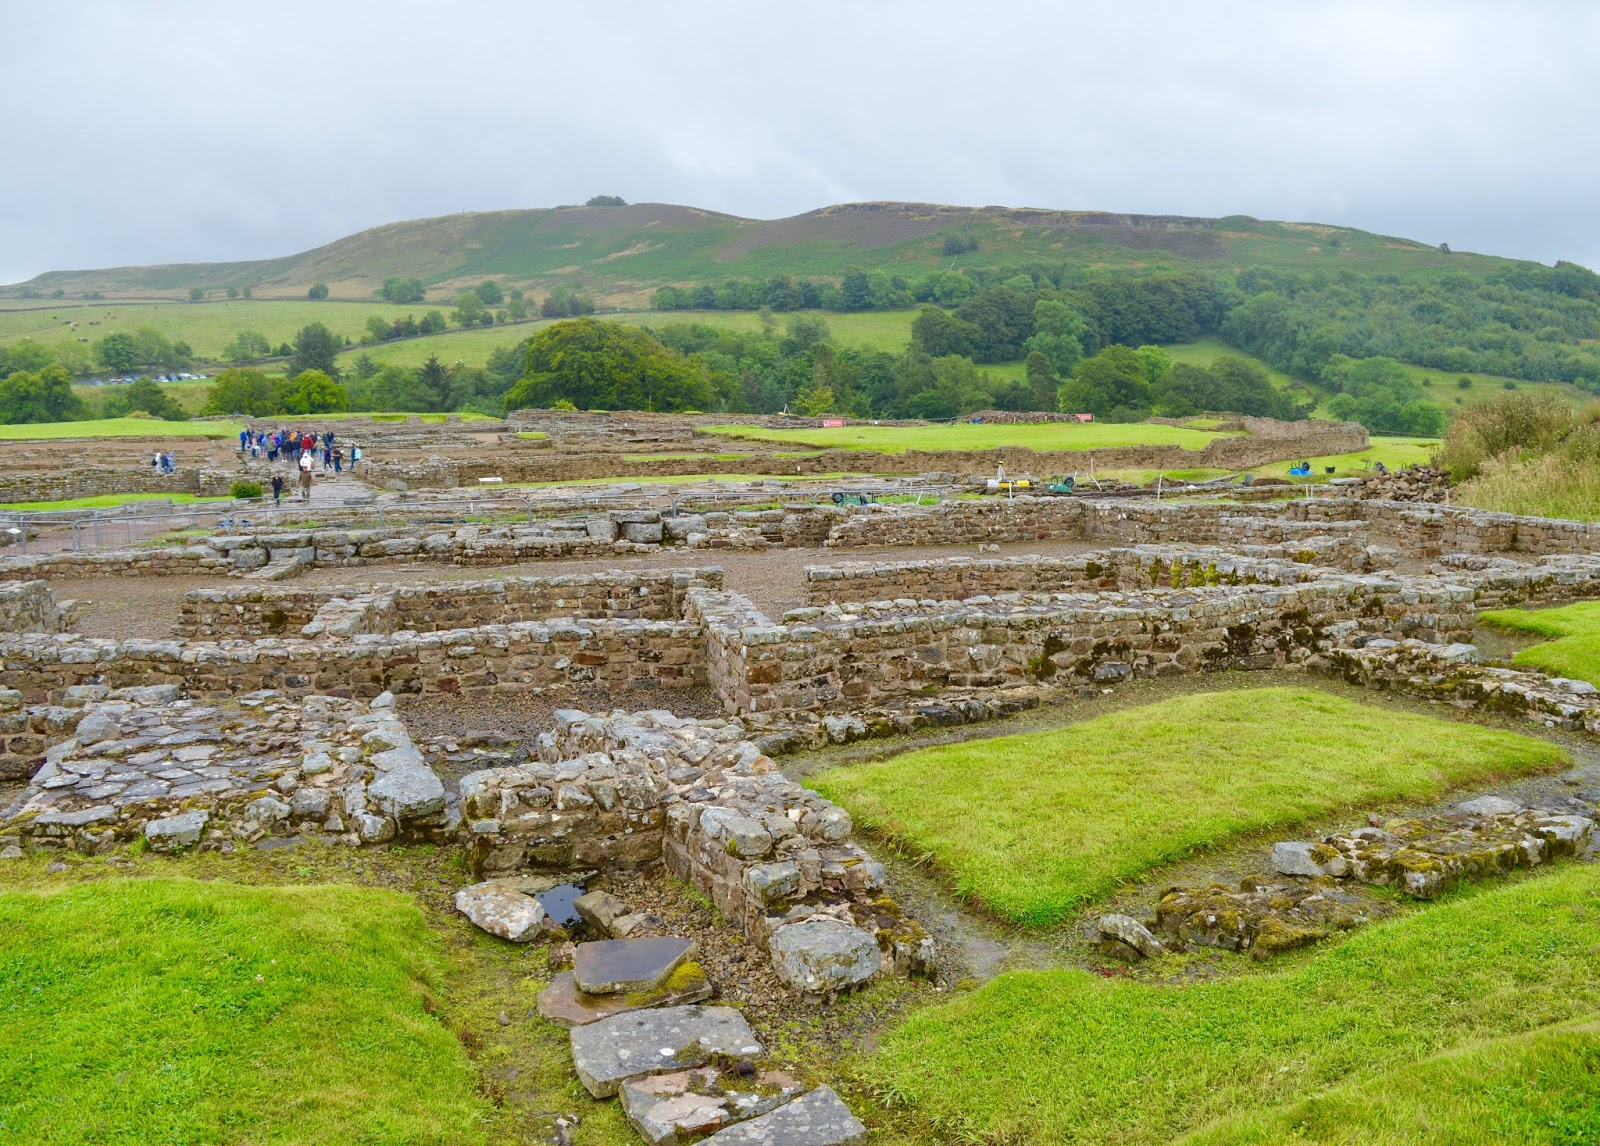 25 days out, events and things to do with kids in Northumberland National Park - Vindolanda